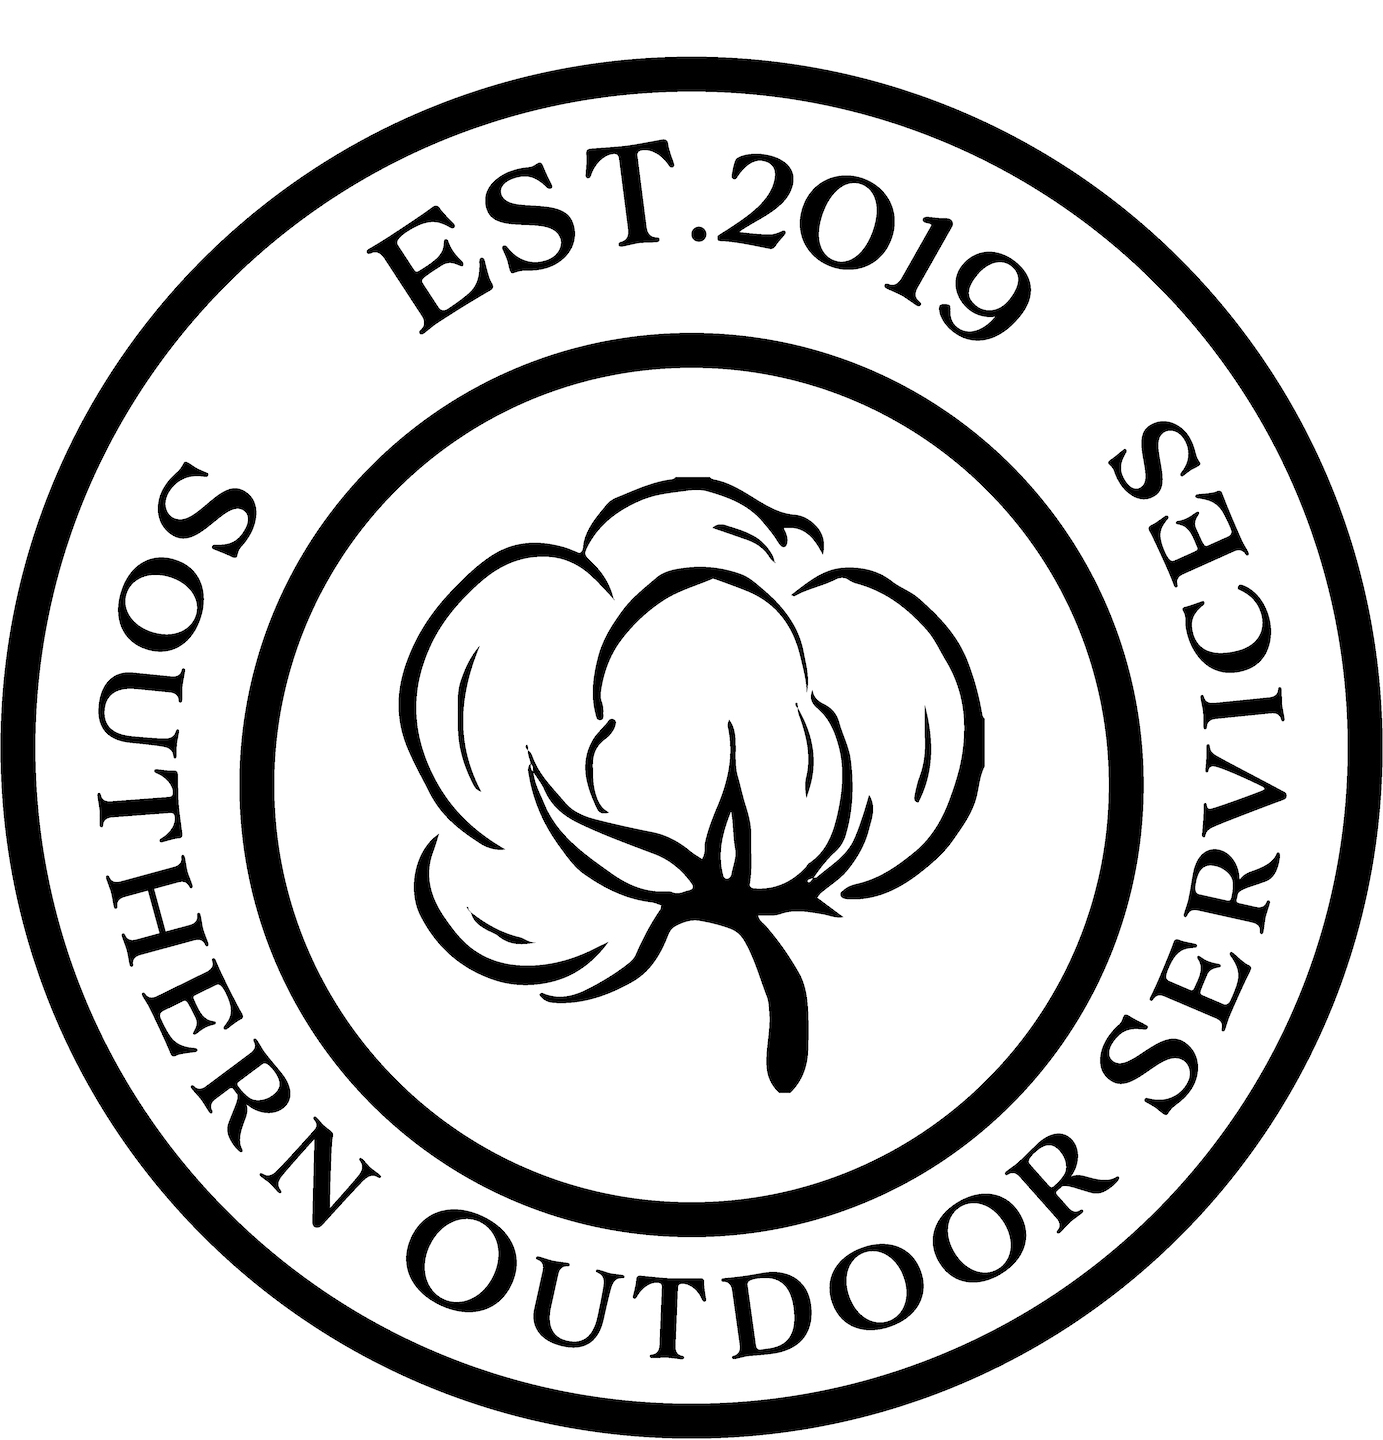 Southern Outdoor Services, LLC